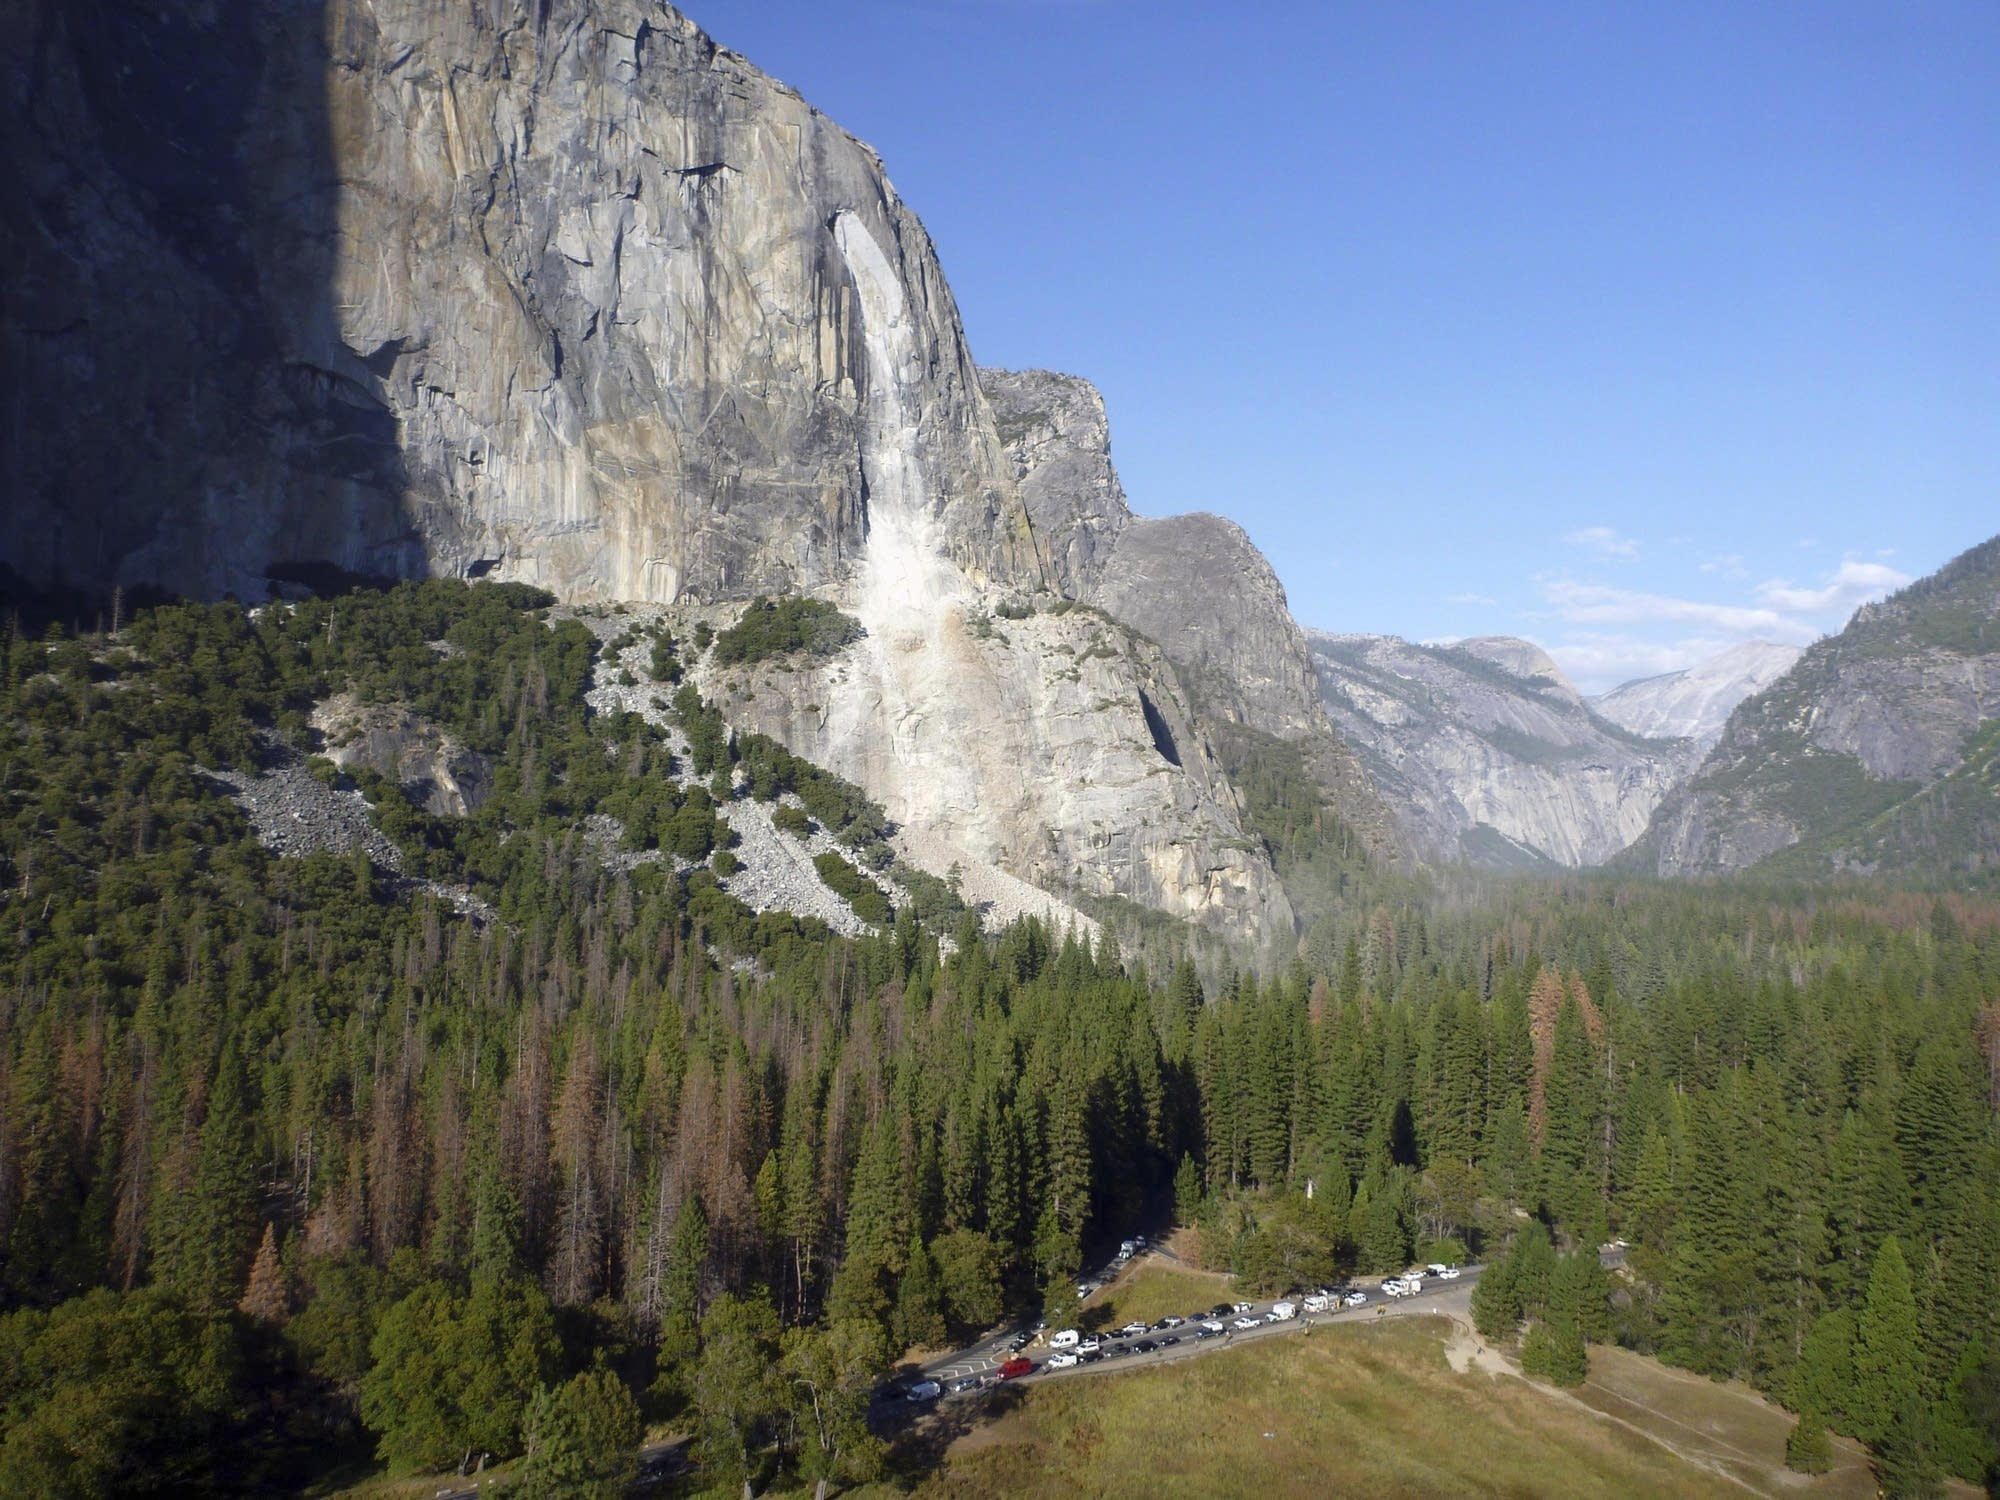 Yosemite National Park is changing as the climate warms.